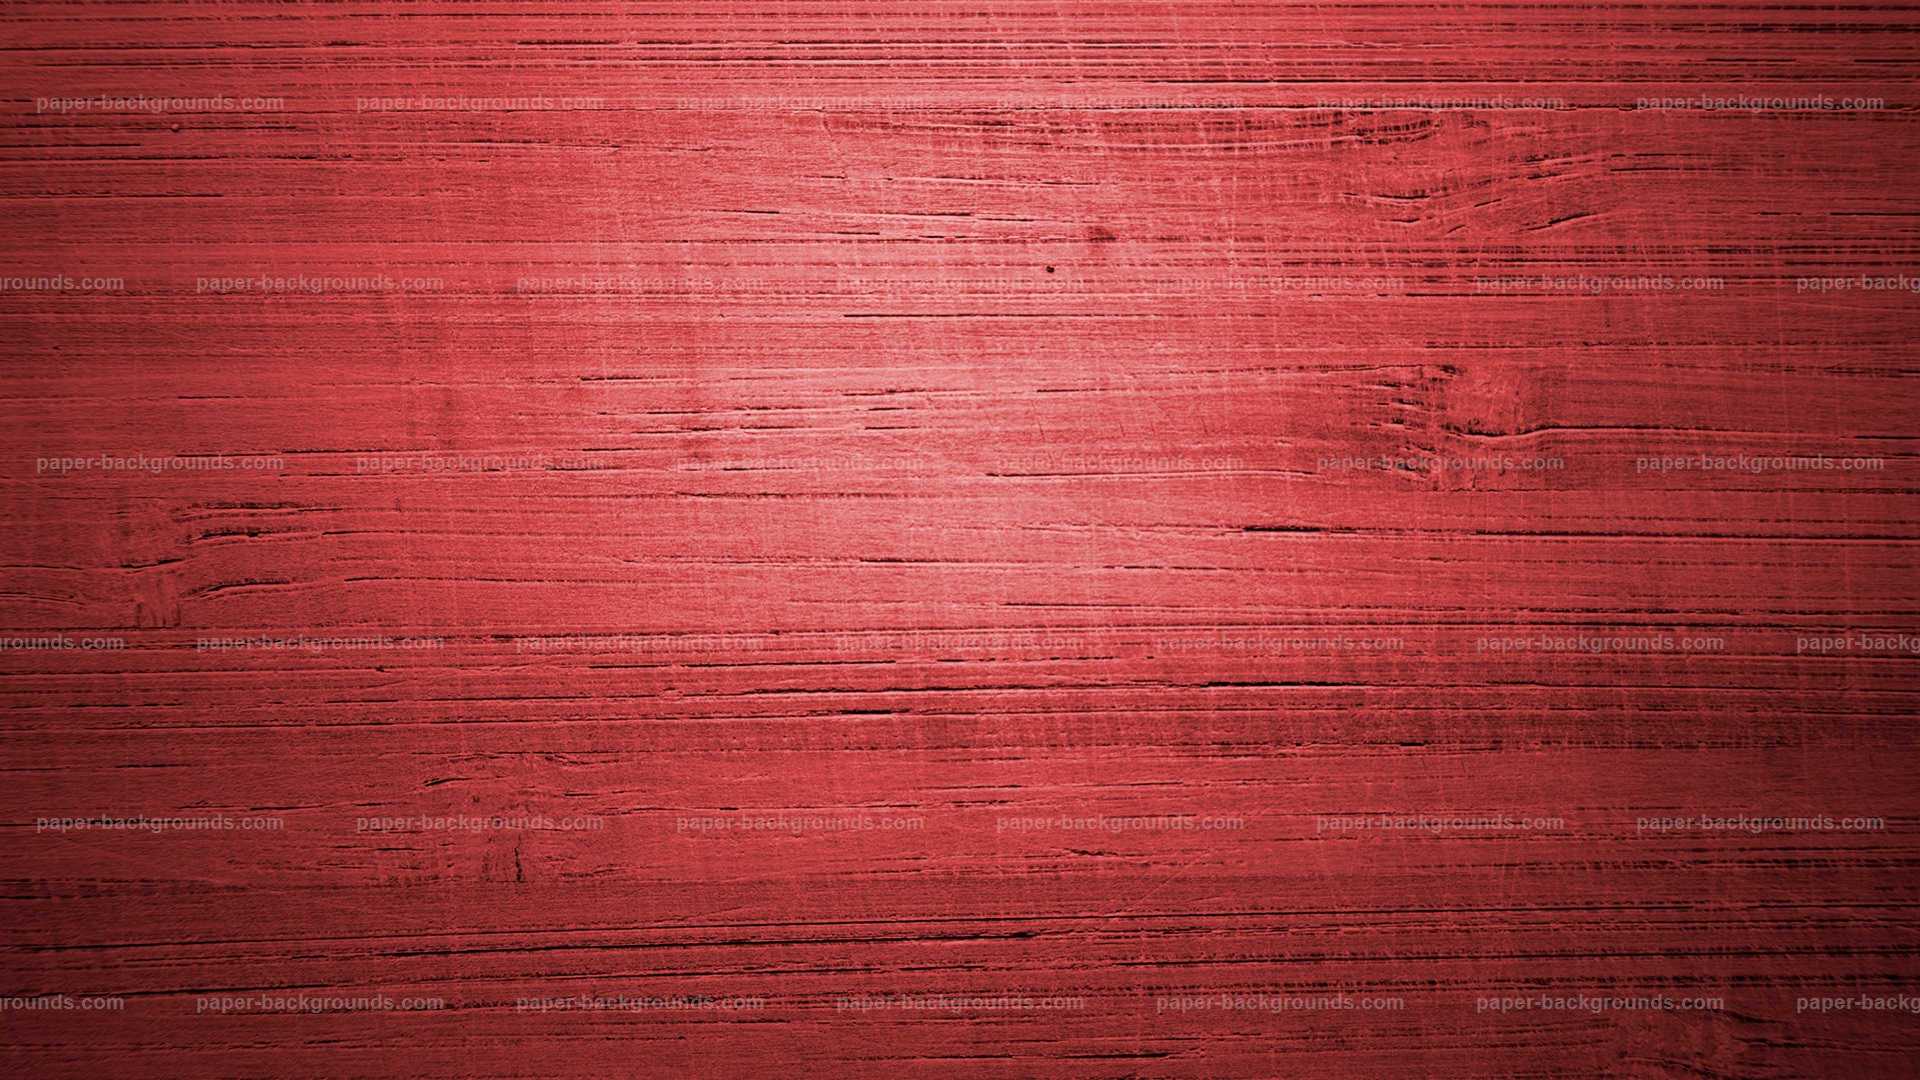 red textured background hd - photo #37